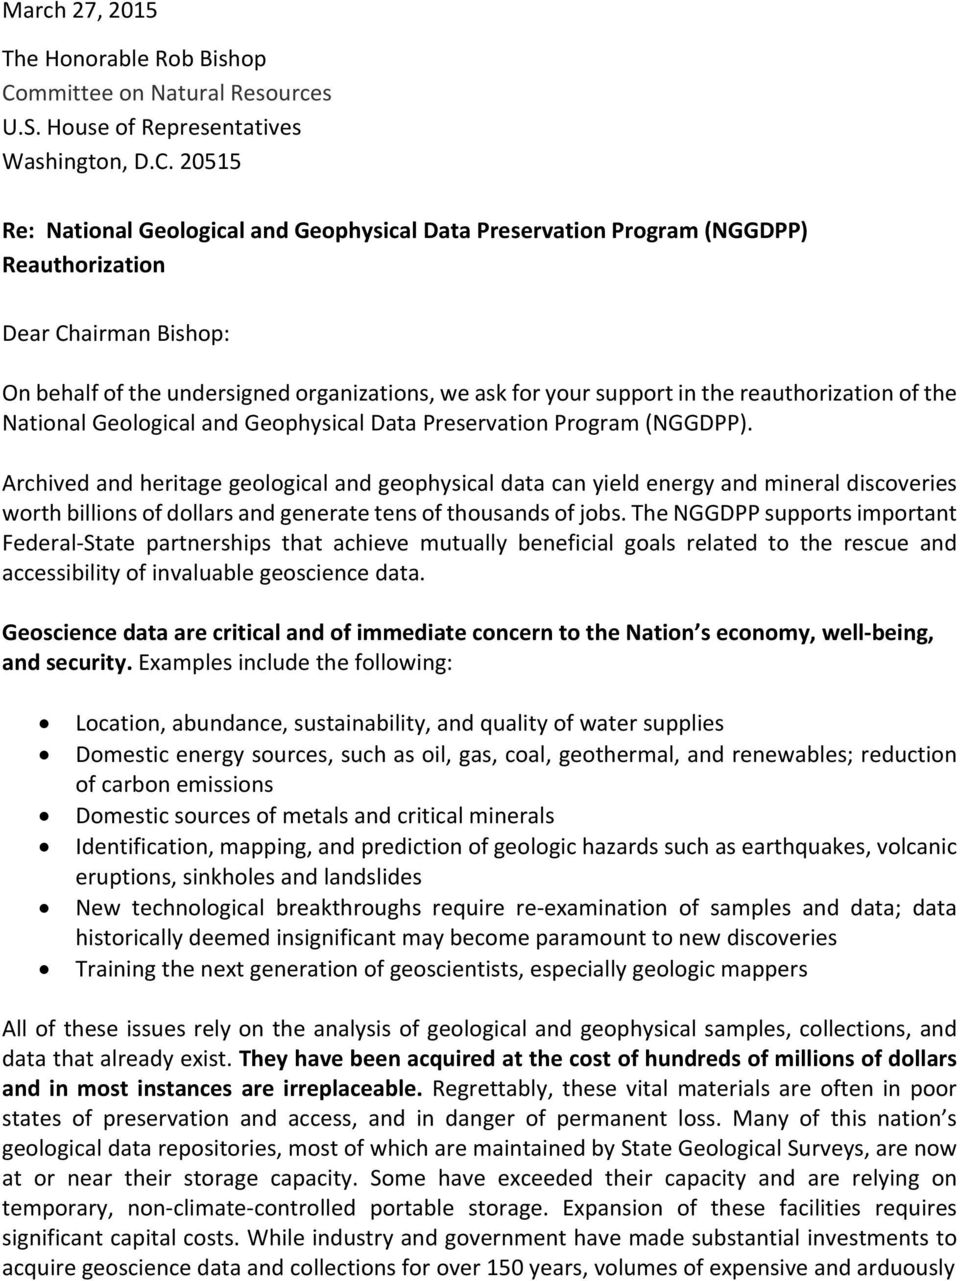 20515 Re: National Geological and Geophysical Data Preservation Program (NGGDPP) Reauthorization Dear Chairman Bishop: On behalf of the undersigned organizations, we ask for your support in the